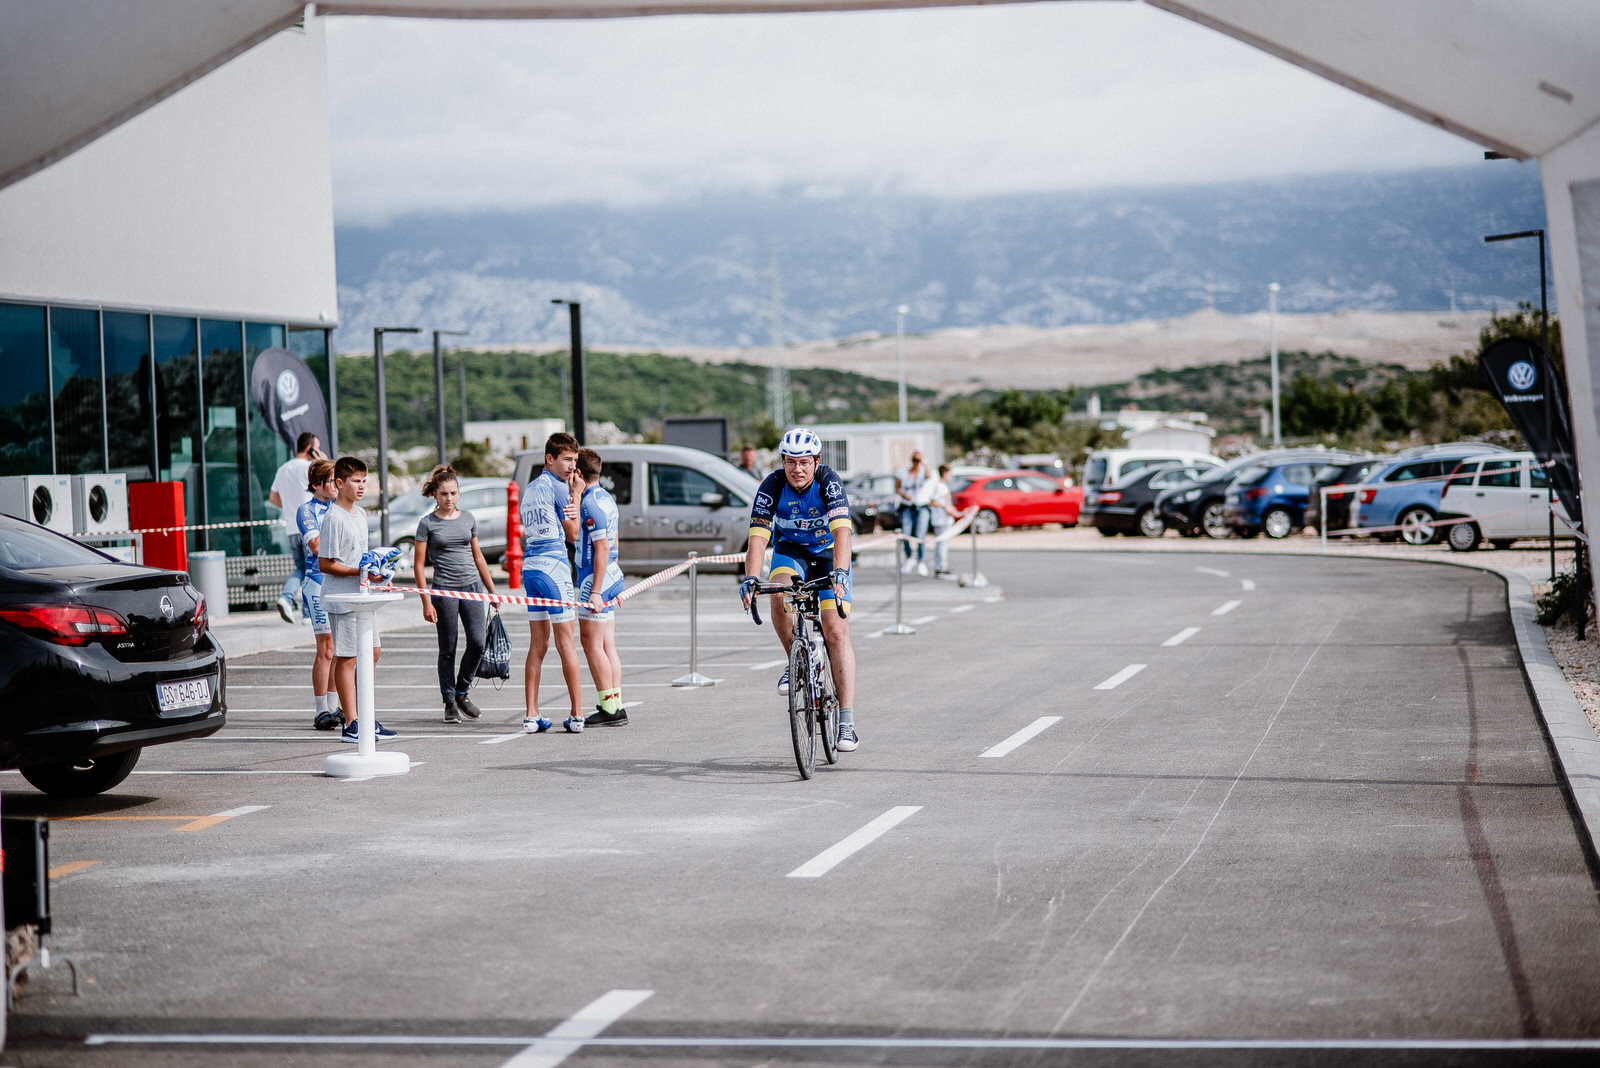 likaclub_Granfondo-Pag-–-Cycling-on-the-Moon_2019-53